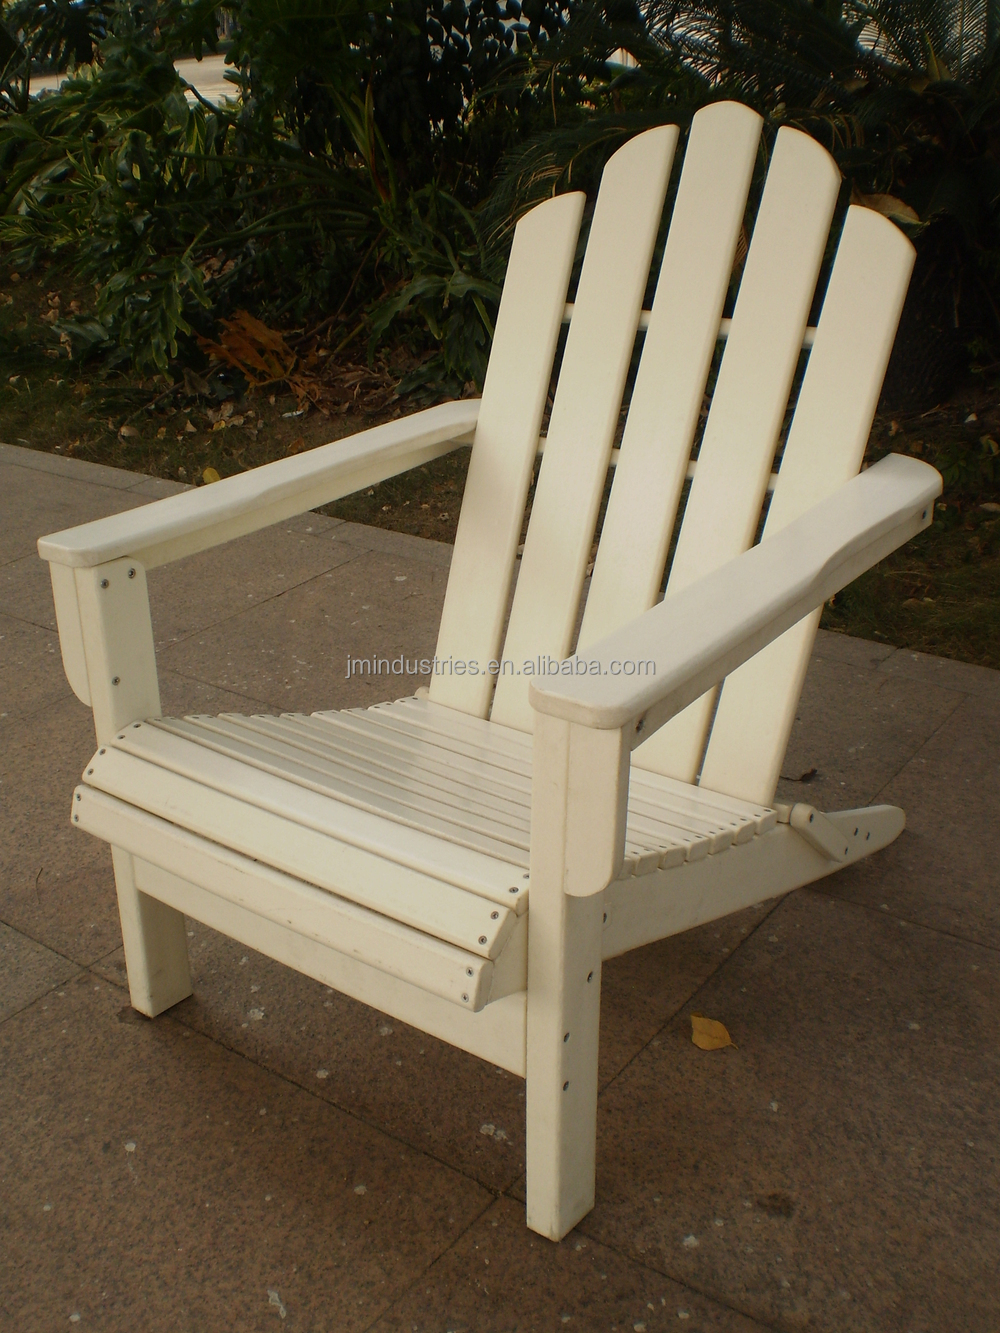 Pvc Wood Furniture ~ Plastic wood chair and table outdoor ploywood furniture